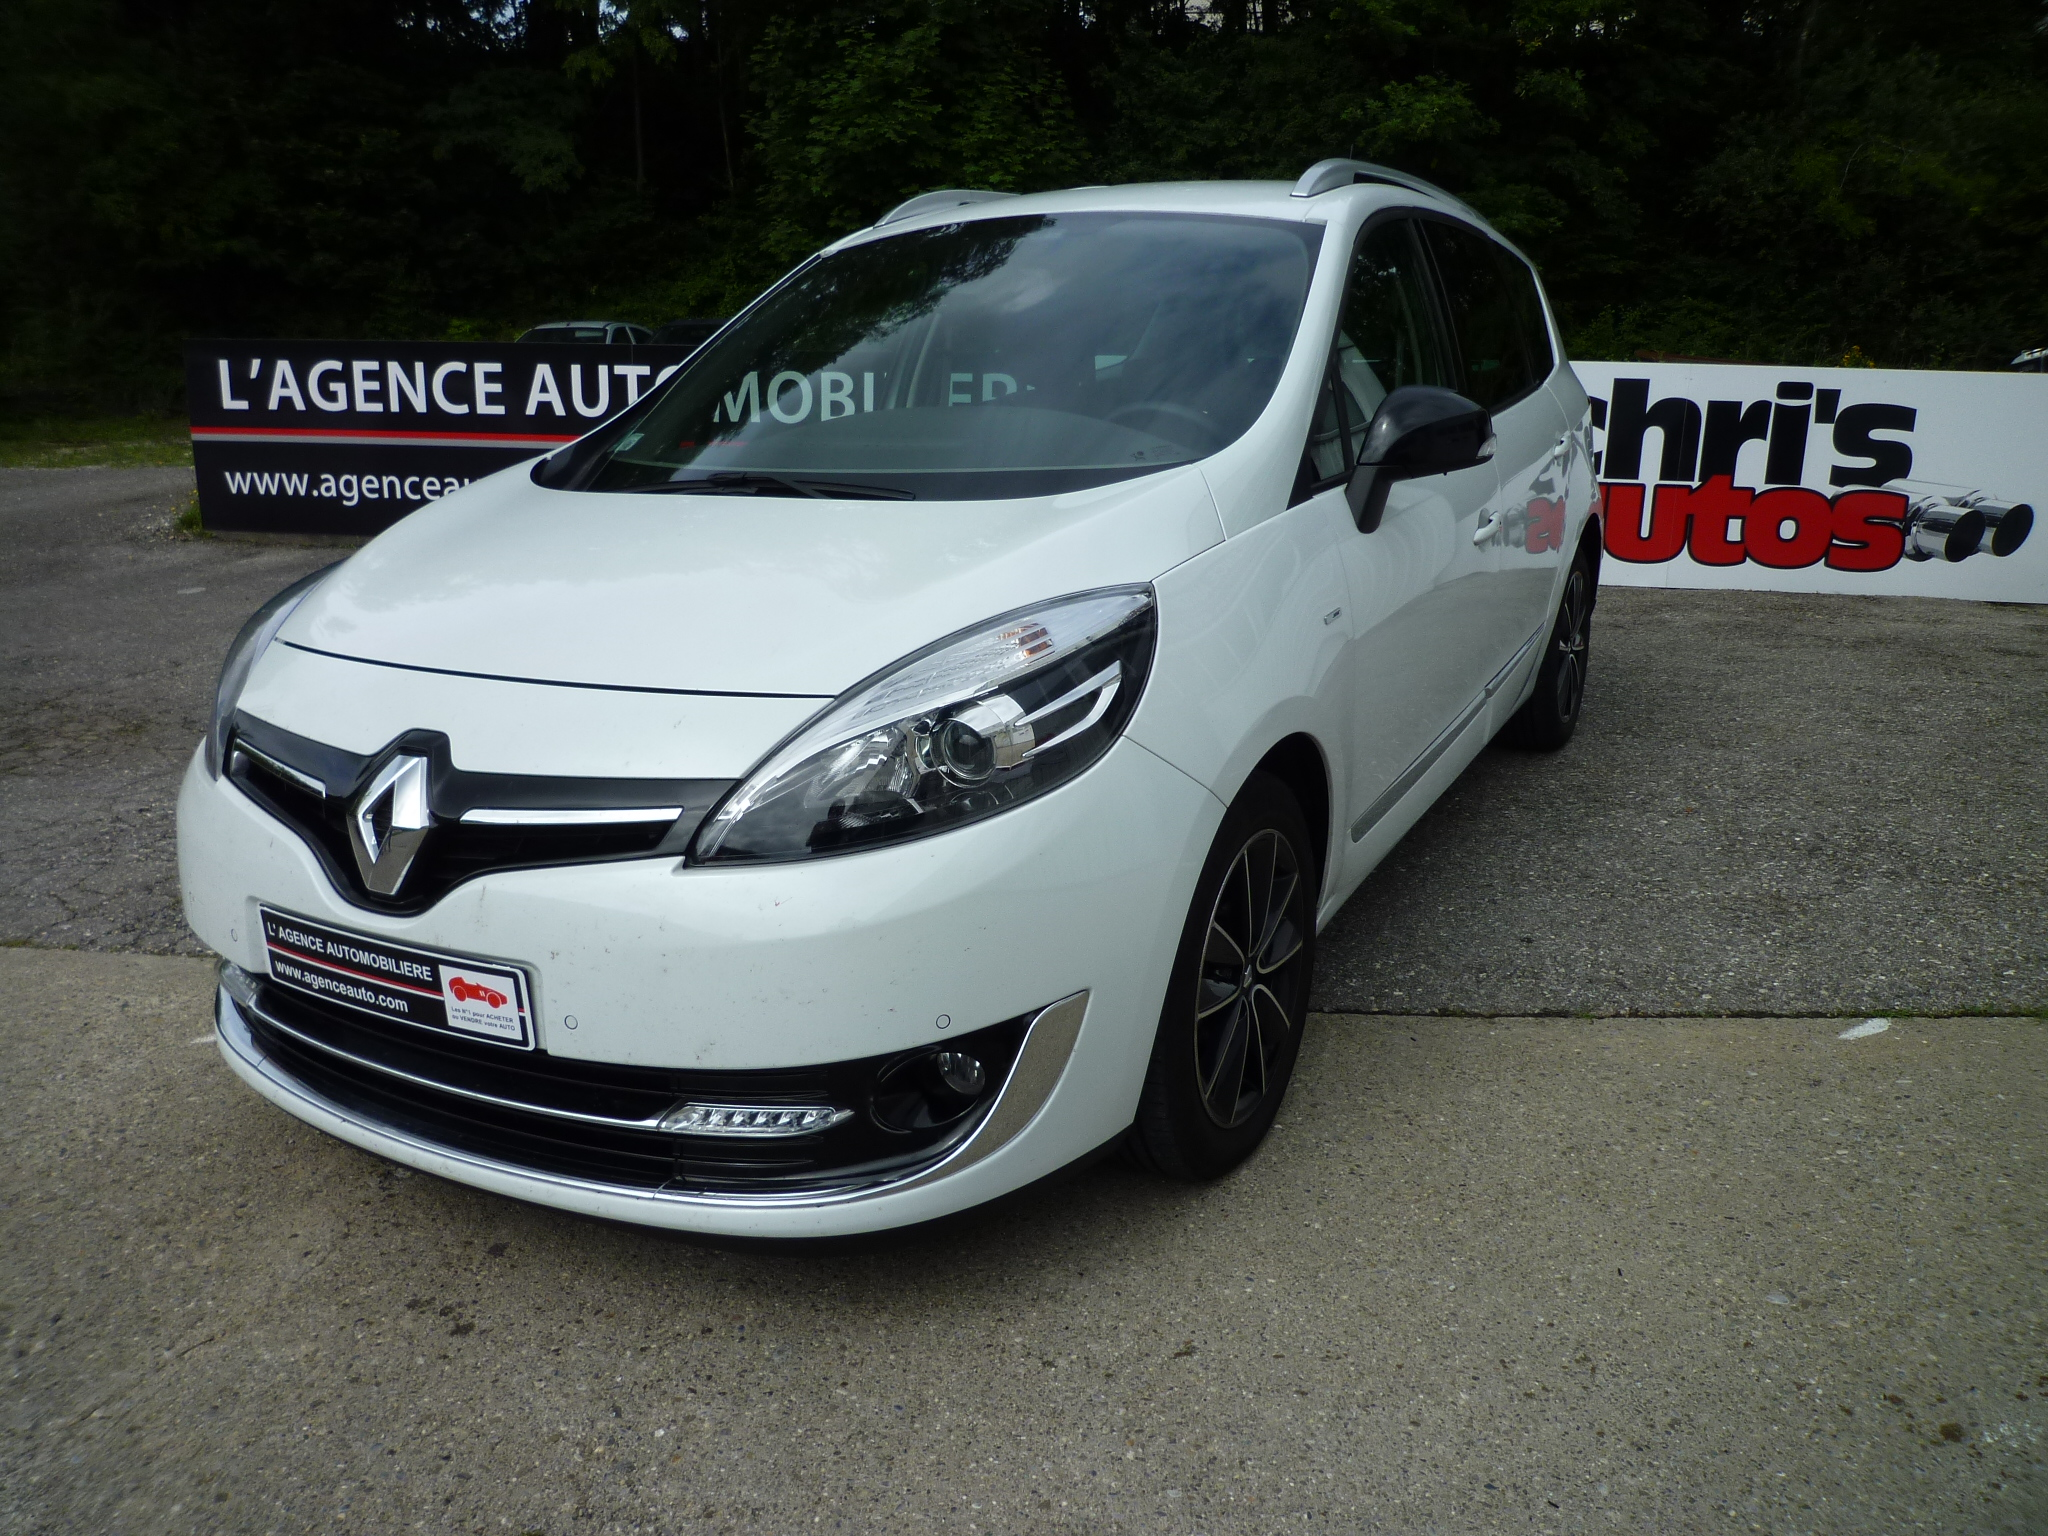 renault scenic energy bose 130 7 places occasion annecy pas cher voiture occasion haute savoie. Black Bedroom Furniture Sets. Home Design Ideas